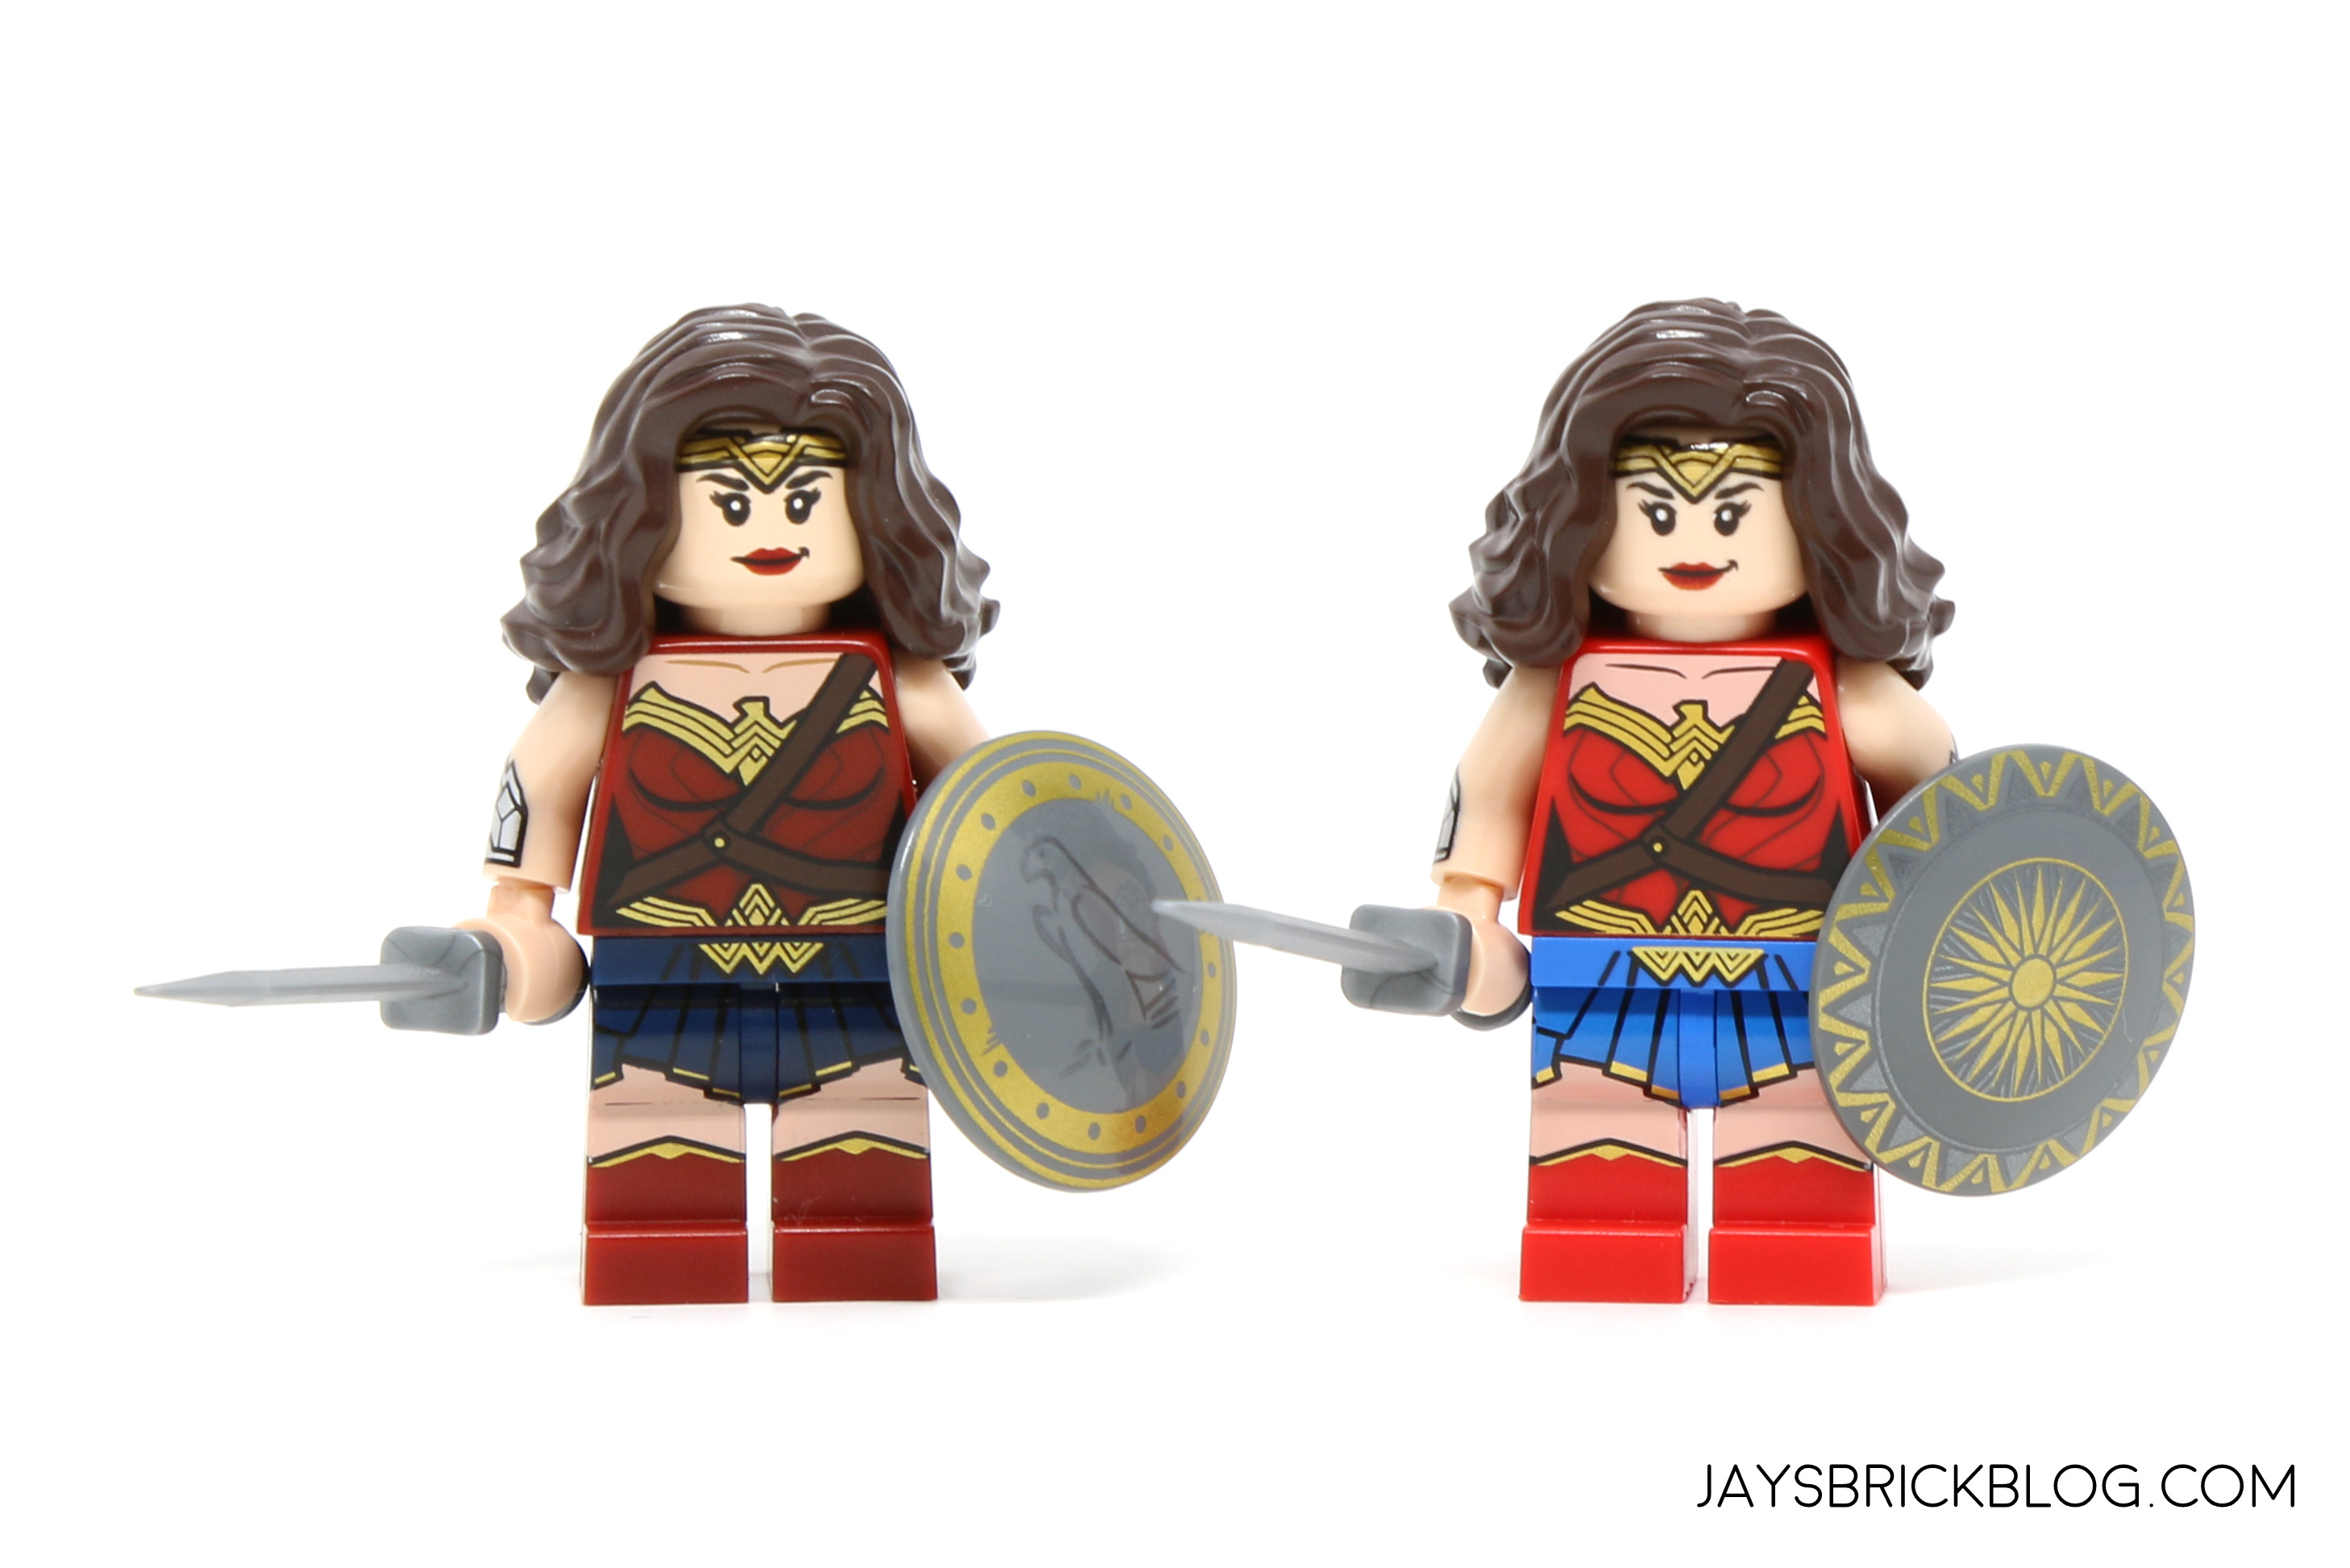 heres a look at the comparison with the previous wonder woman minifigure from the dc cinematic universe the lines are much sharper and more defined on the - Lego Wonder Woman